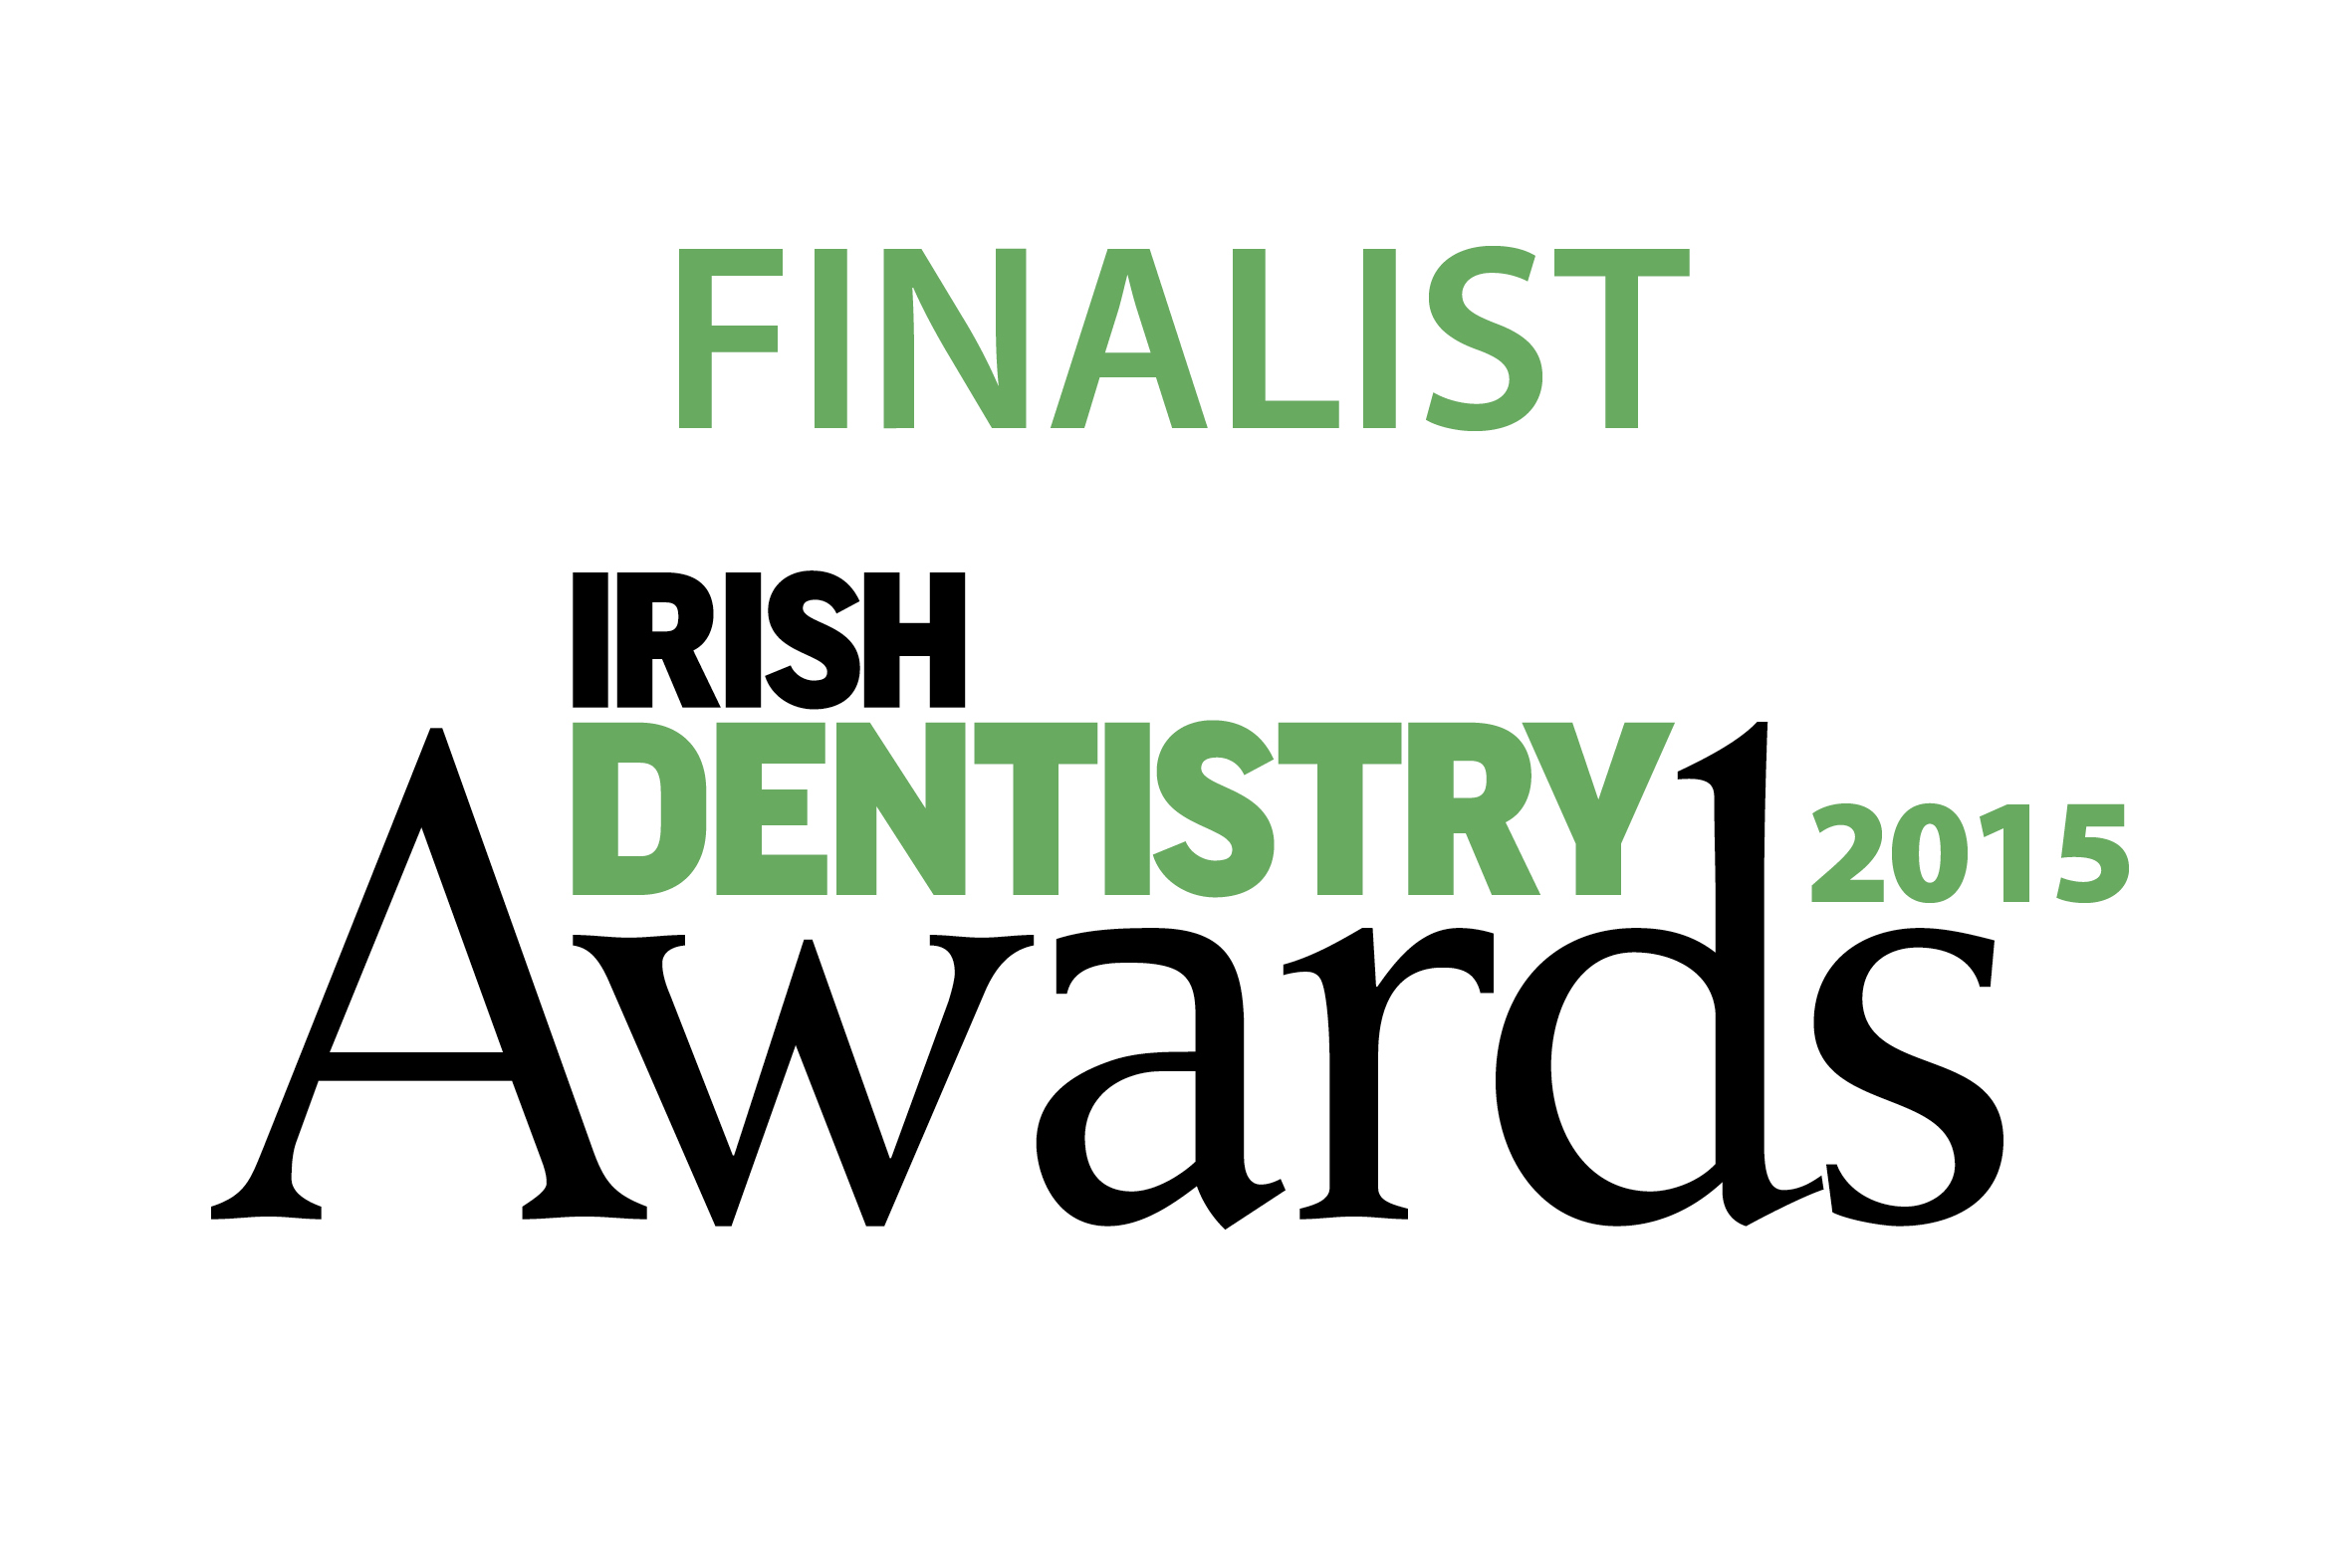 Swords Orthodontics was recognised in Irish Dentistry Awards 2013, 2014 and 2015